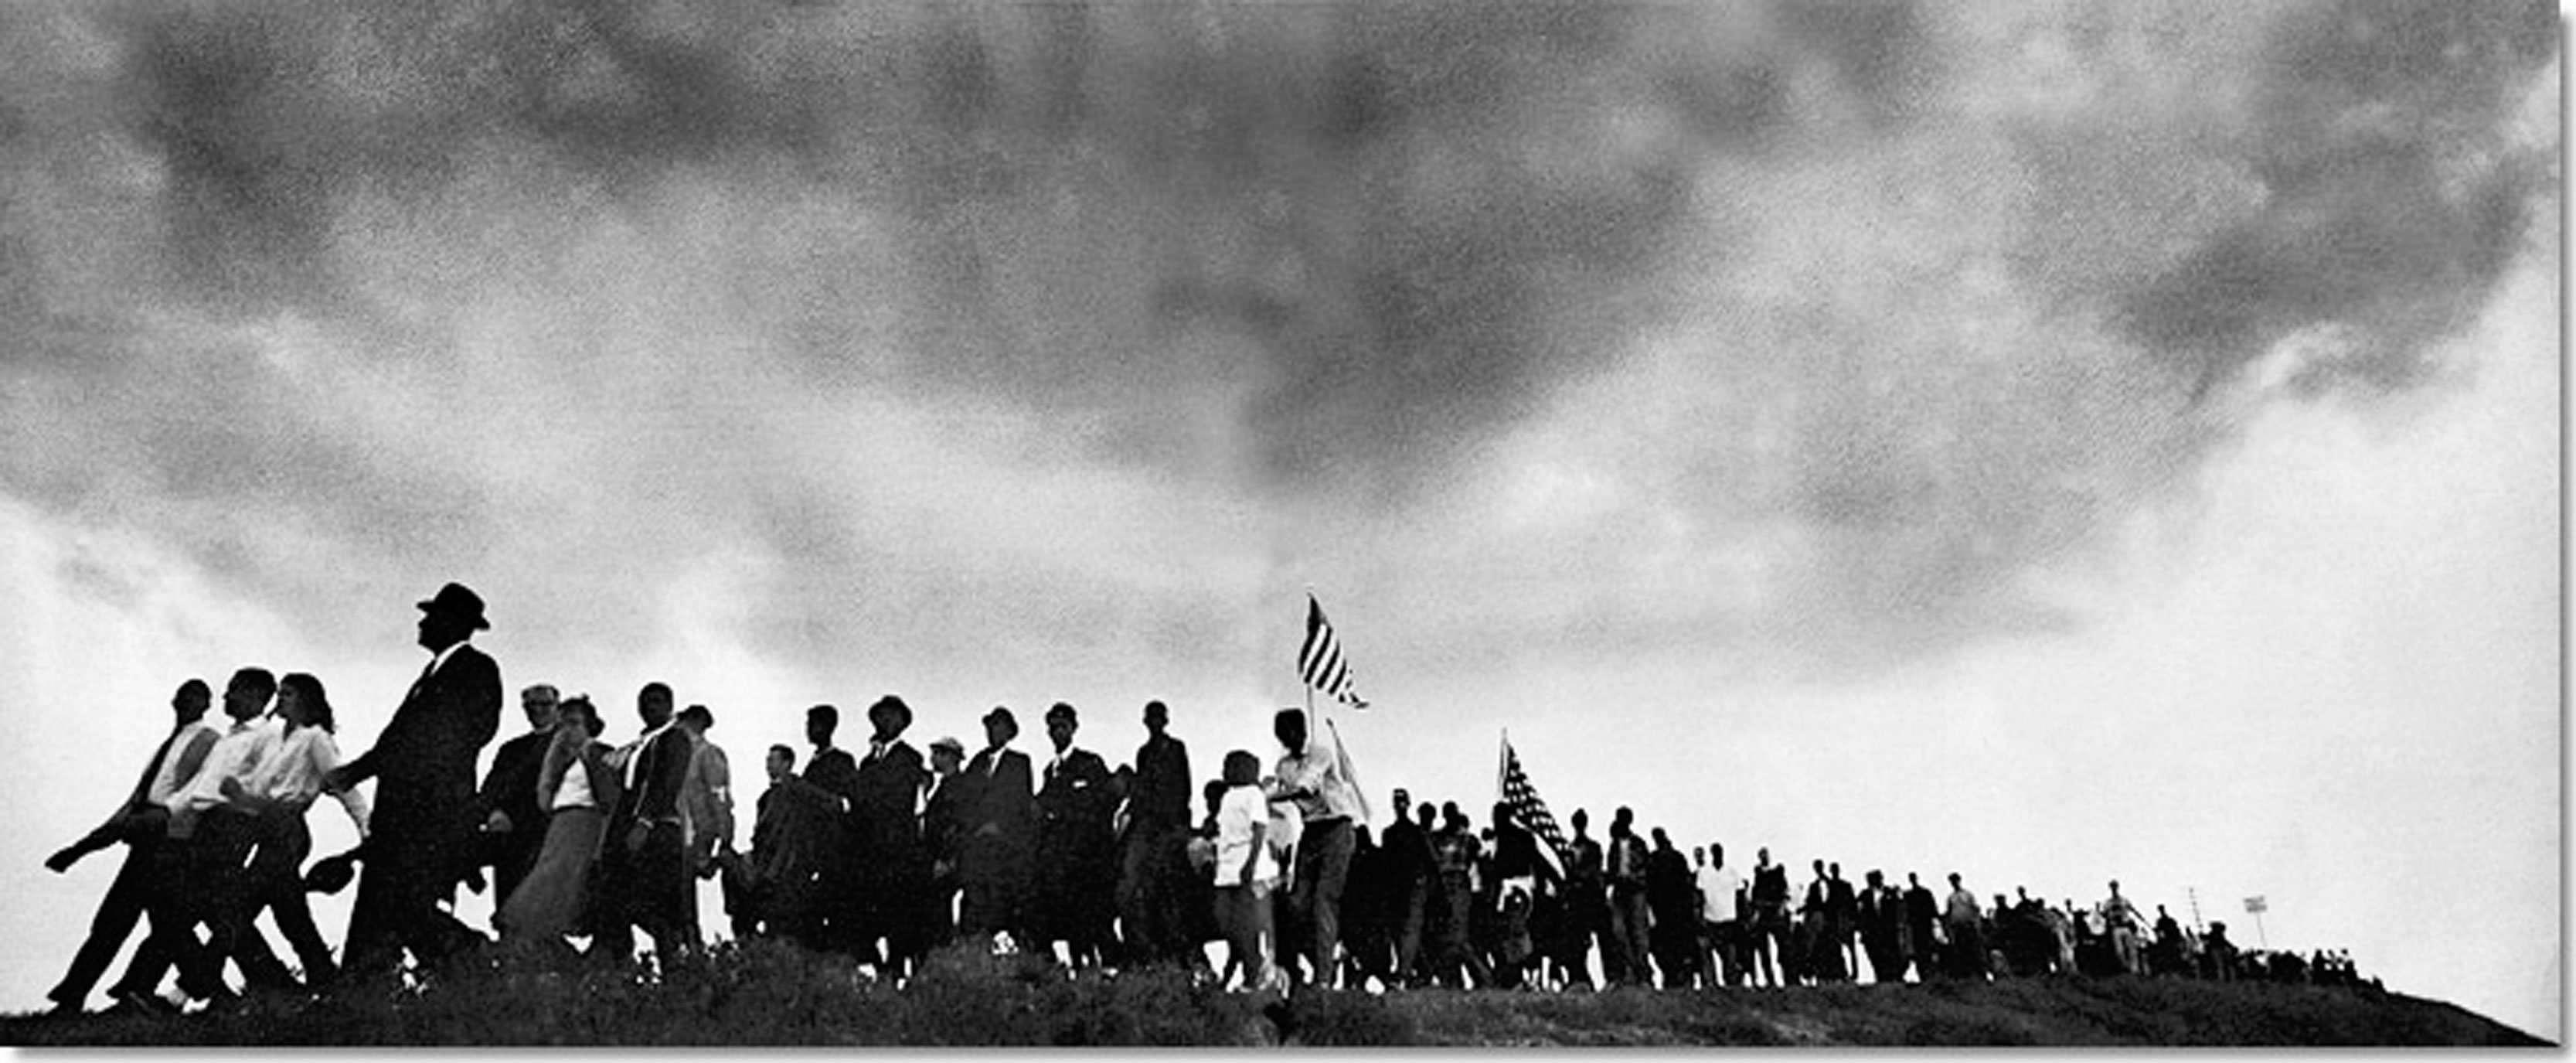 essays on the march from selma to montgomery